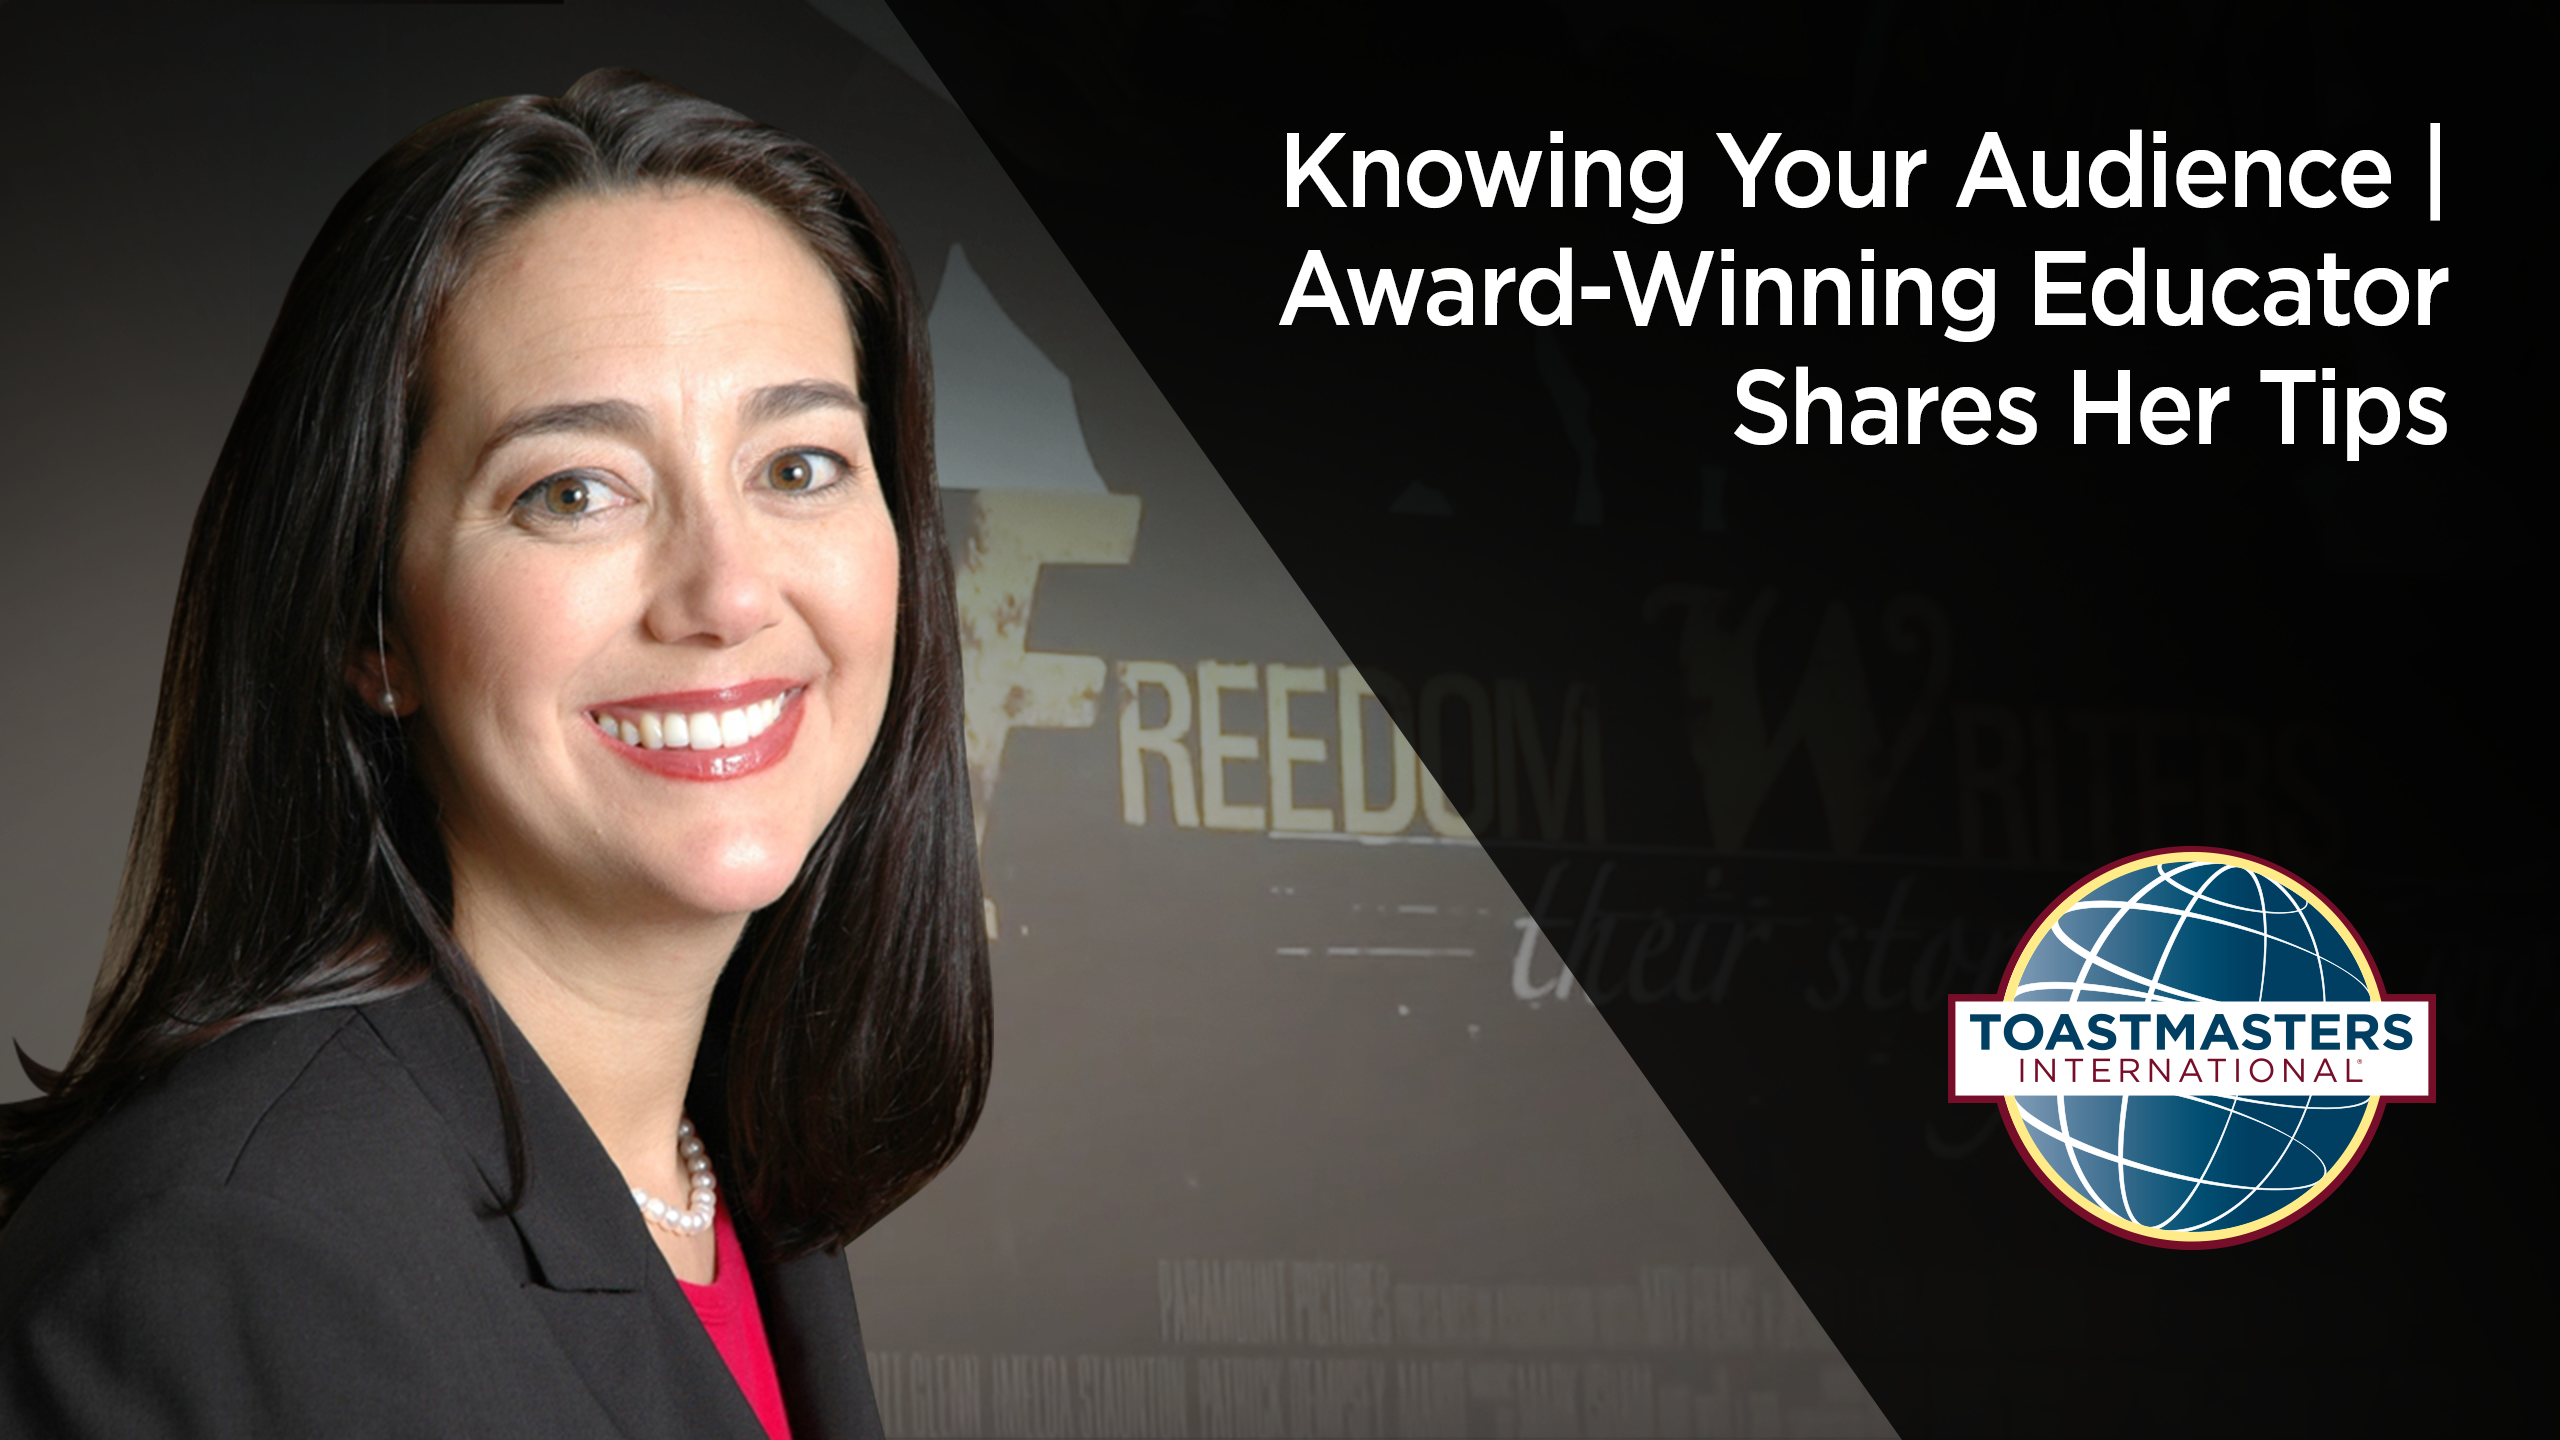 Knowing-Your-Audience-Award-Winning-Educator-Shares-Her-Tips